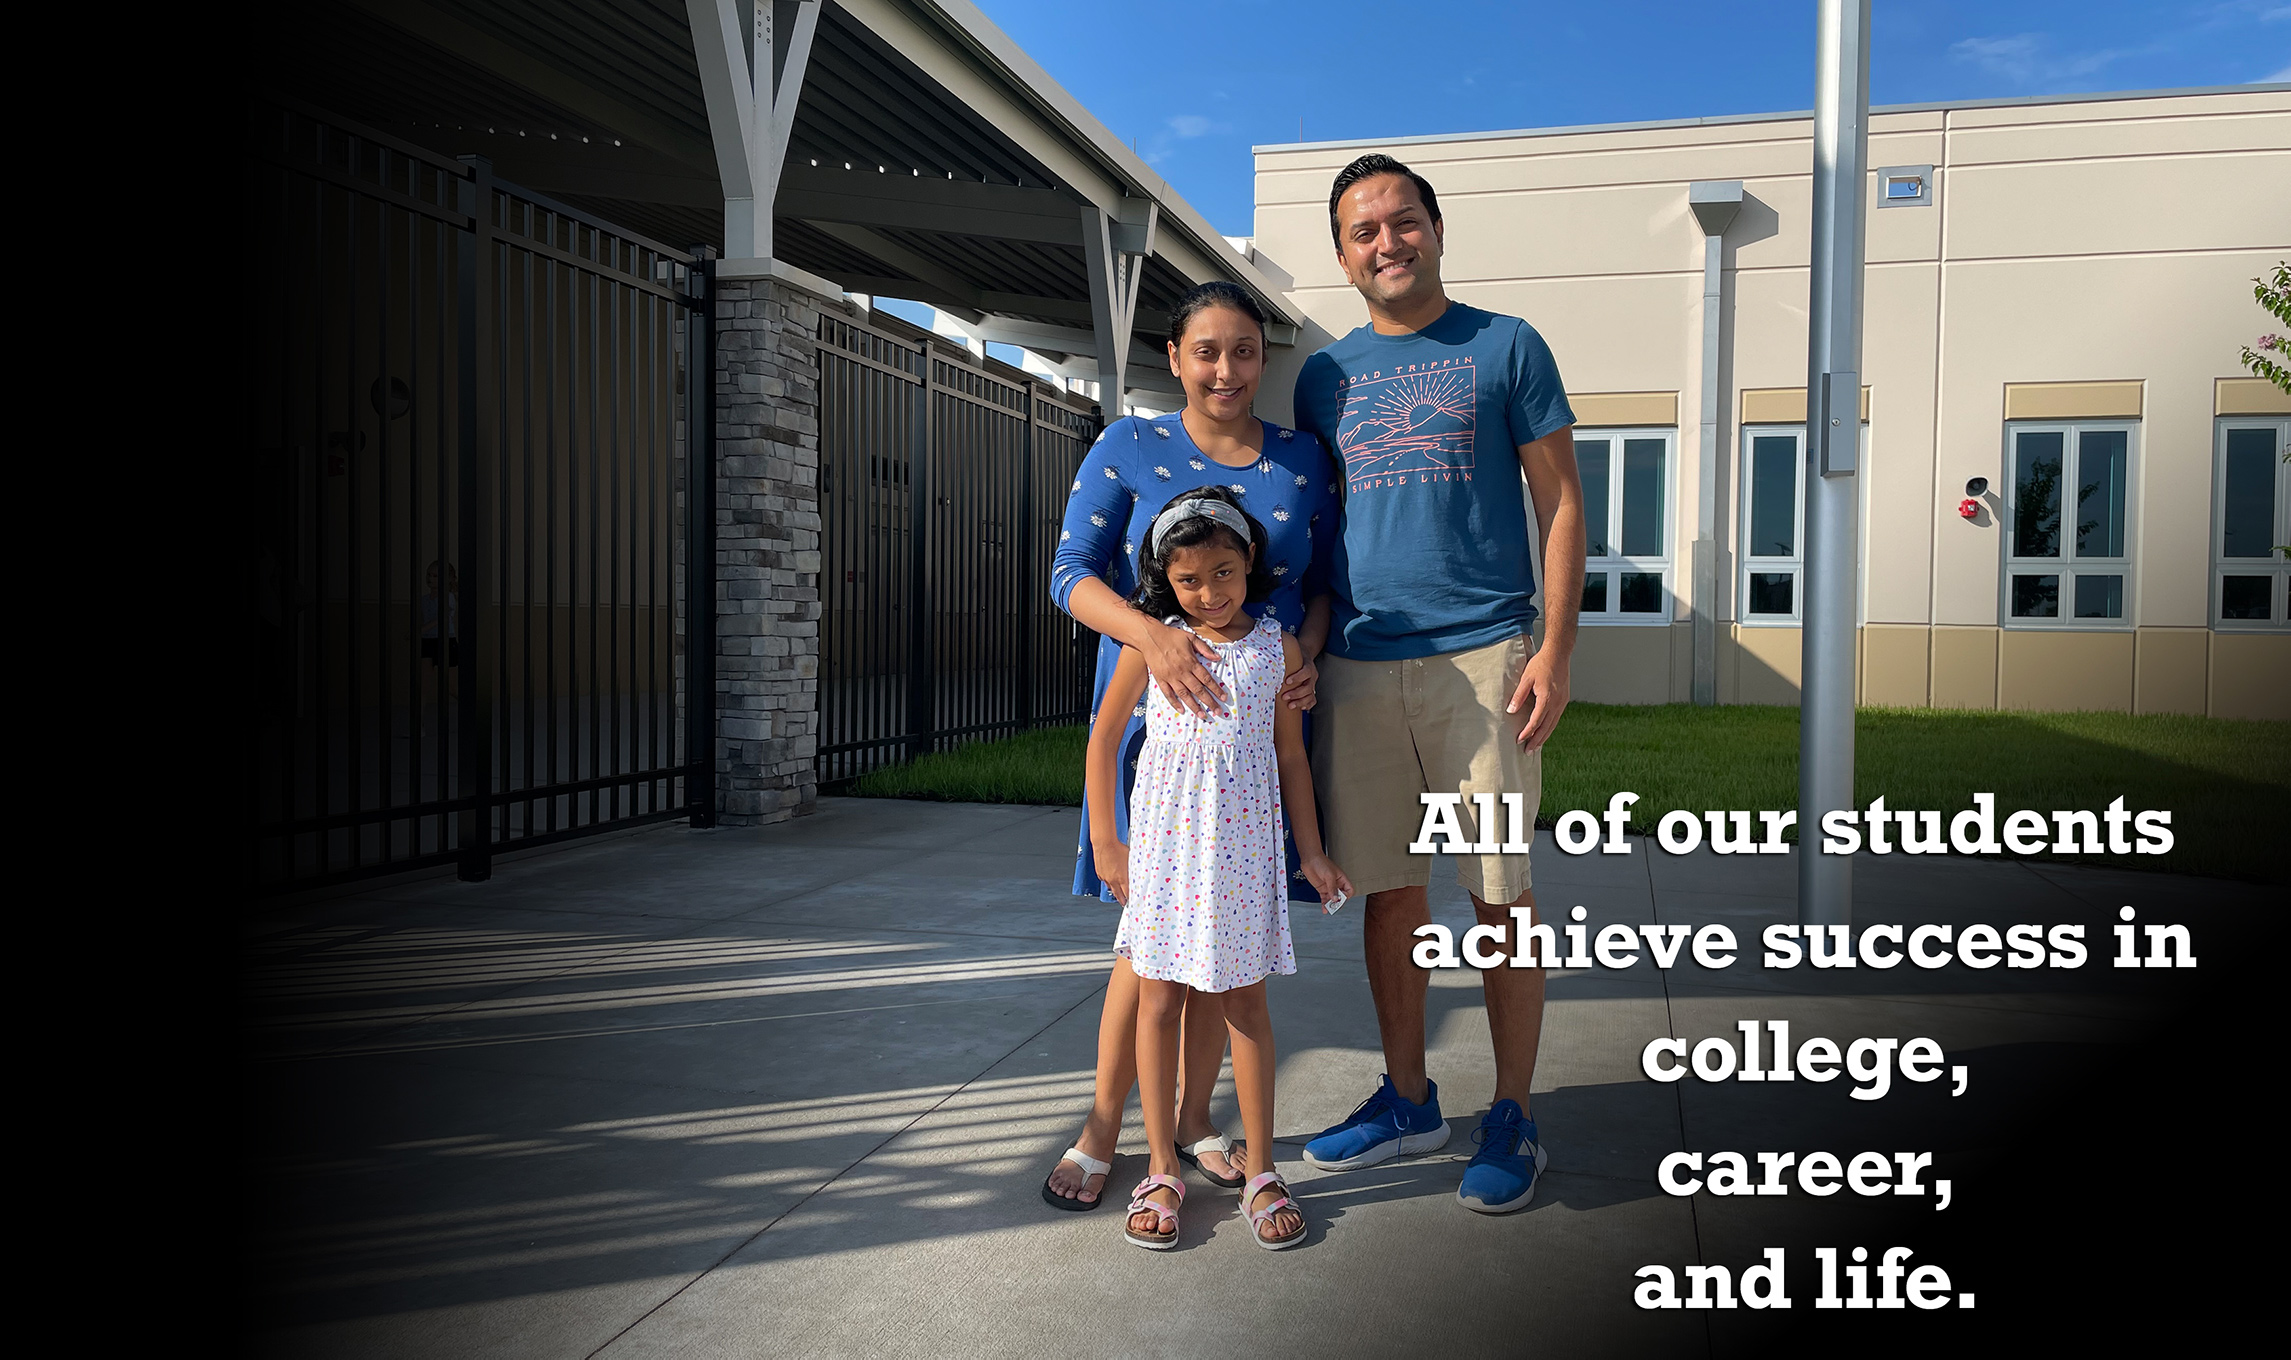 All of our students achieve success in college, career, and life.